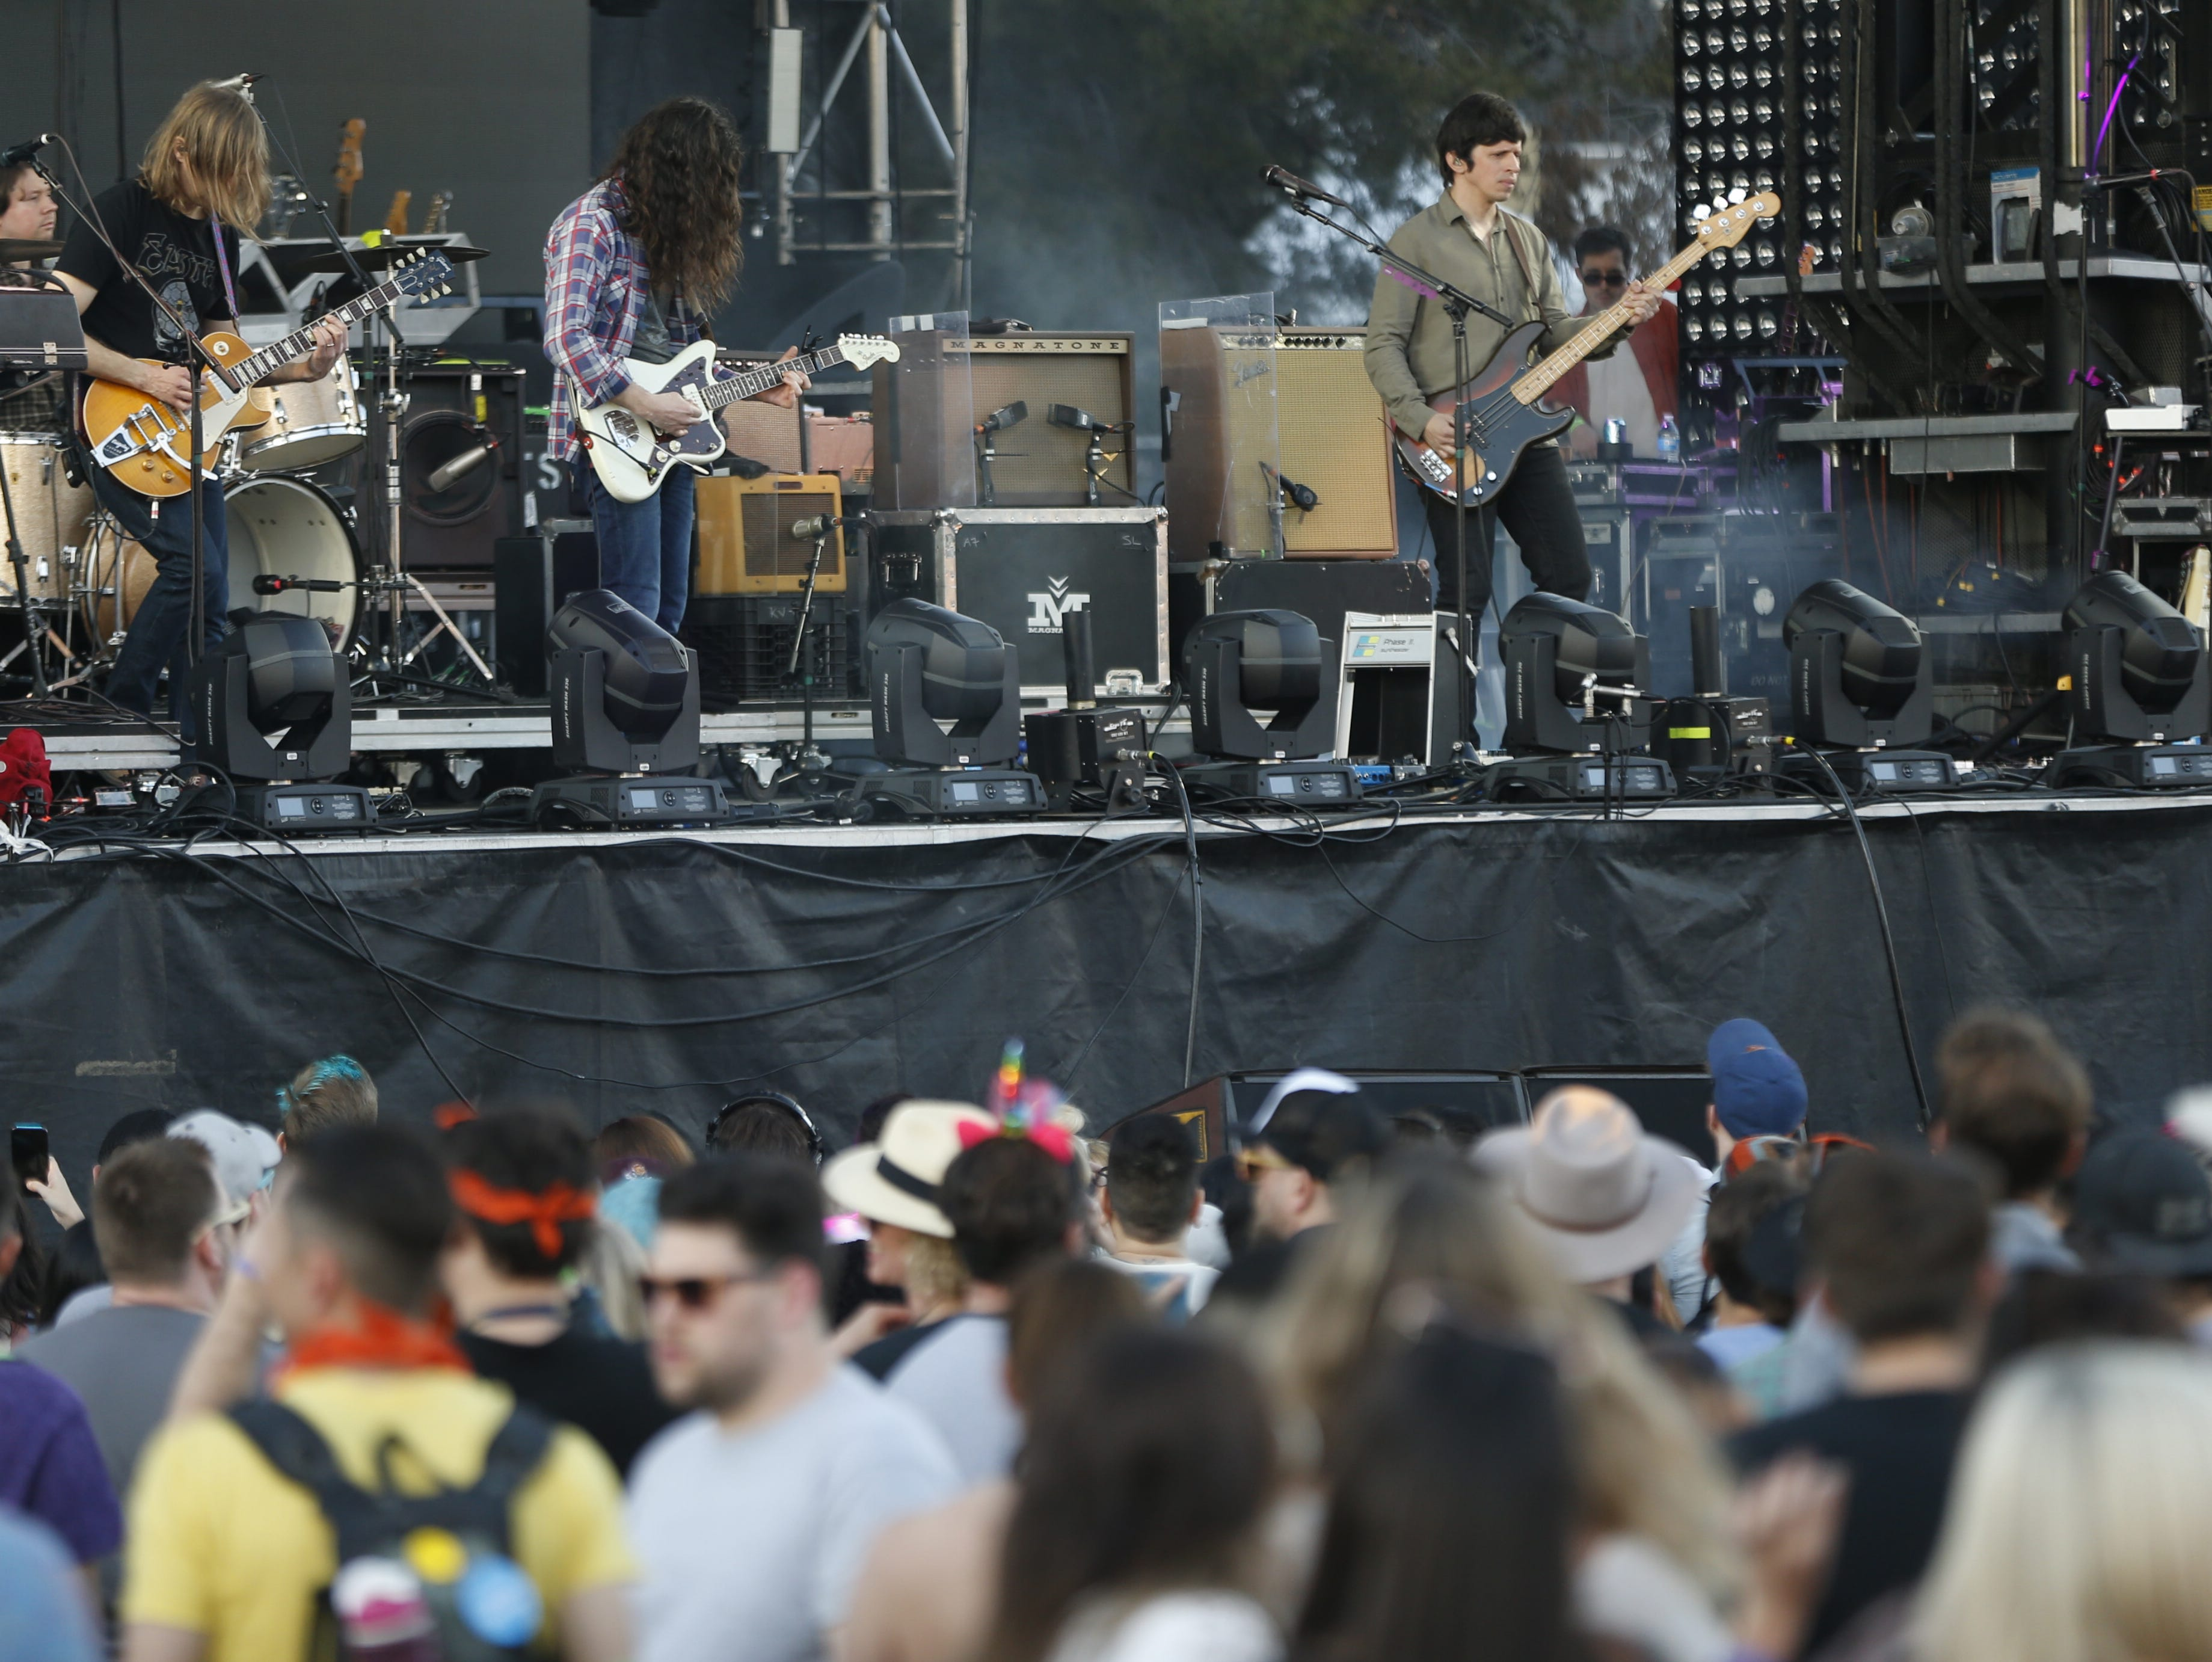 Kurt Vile and The Violators perform during the McDowell Mountain Music Festival in Phoenix on March 2, 2019.